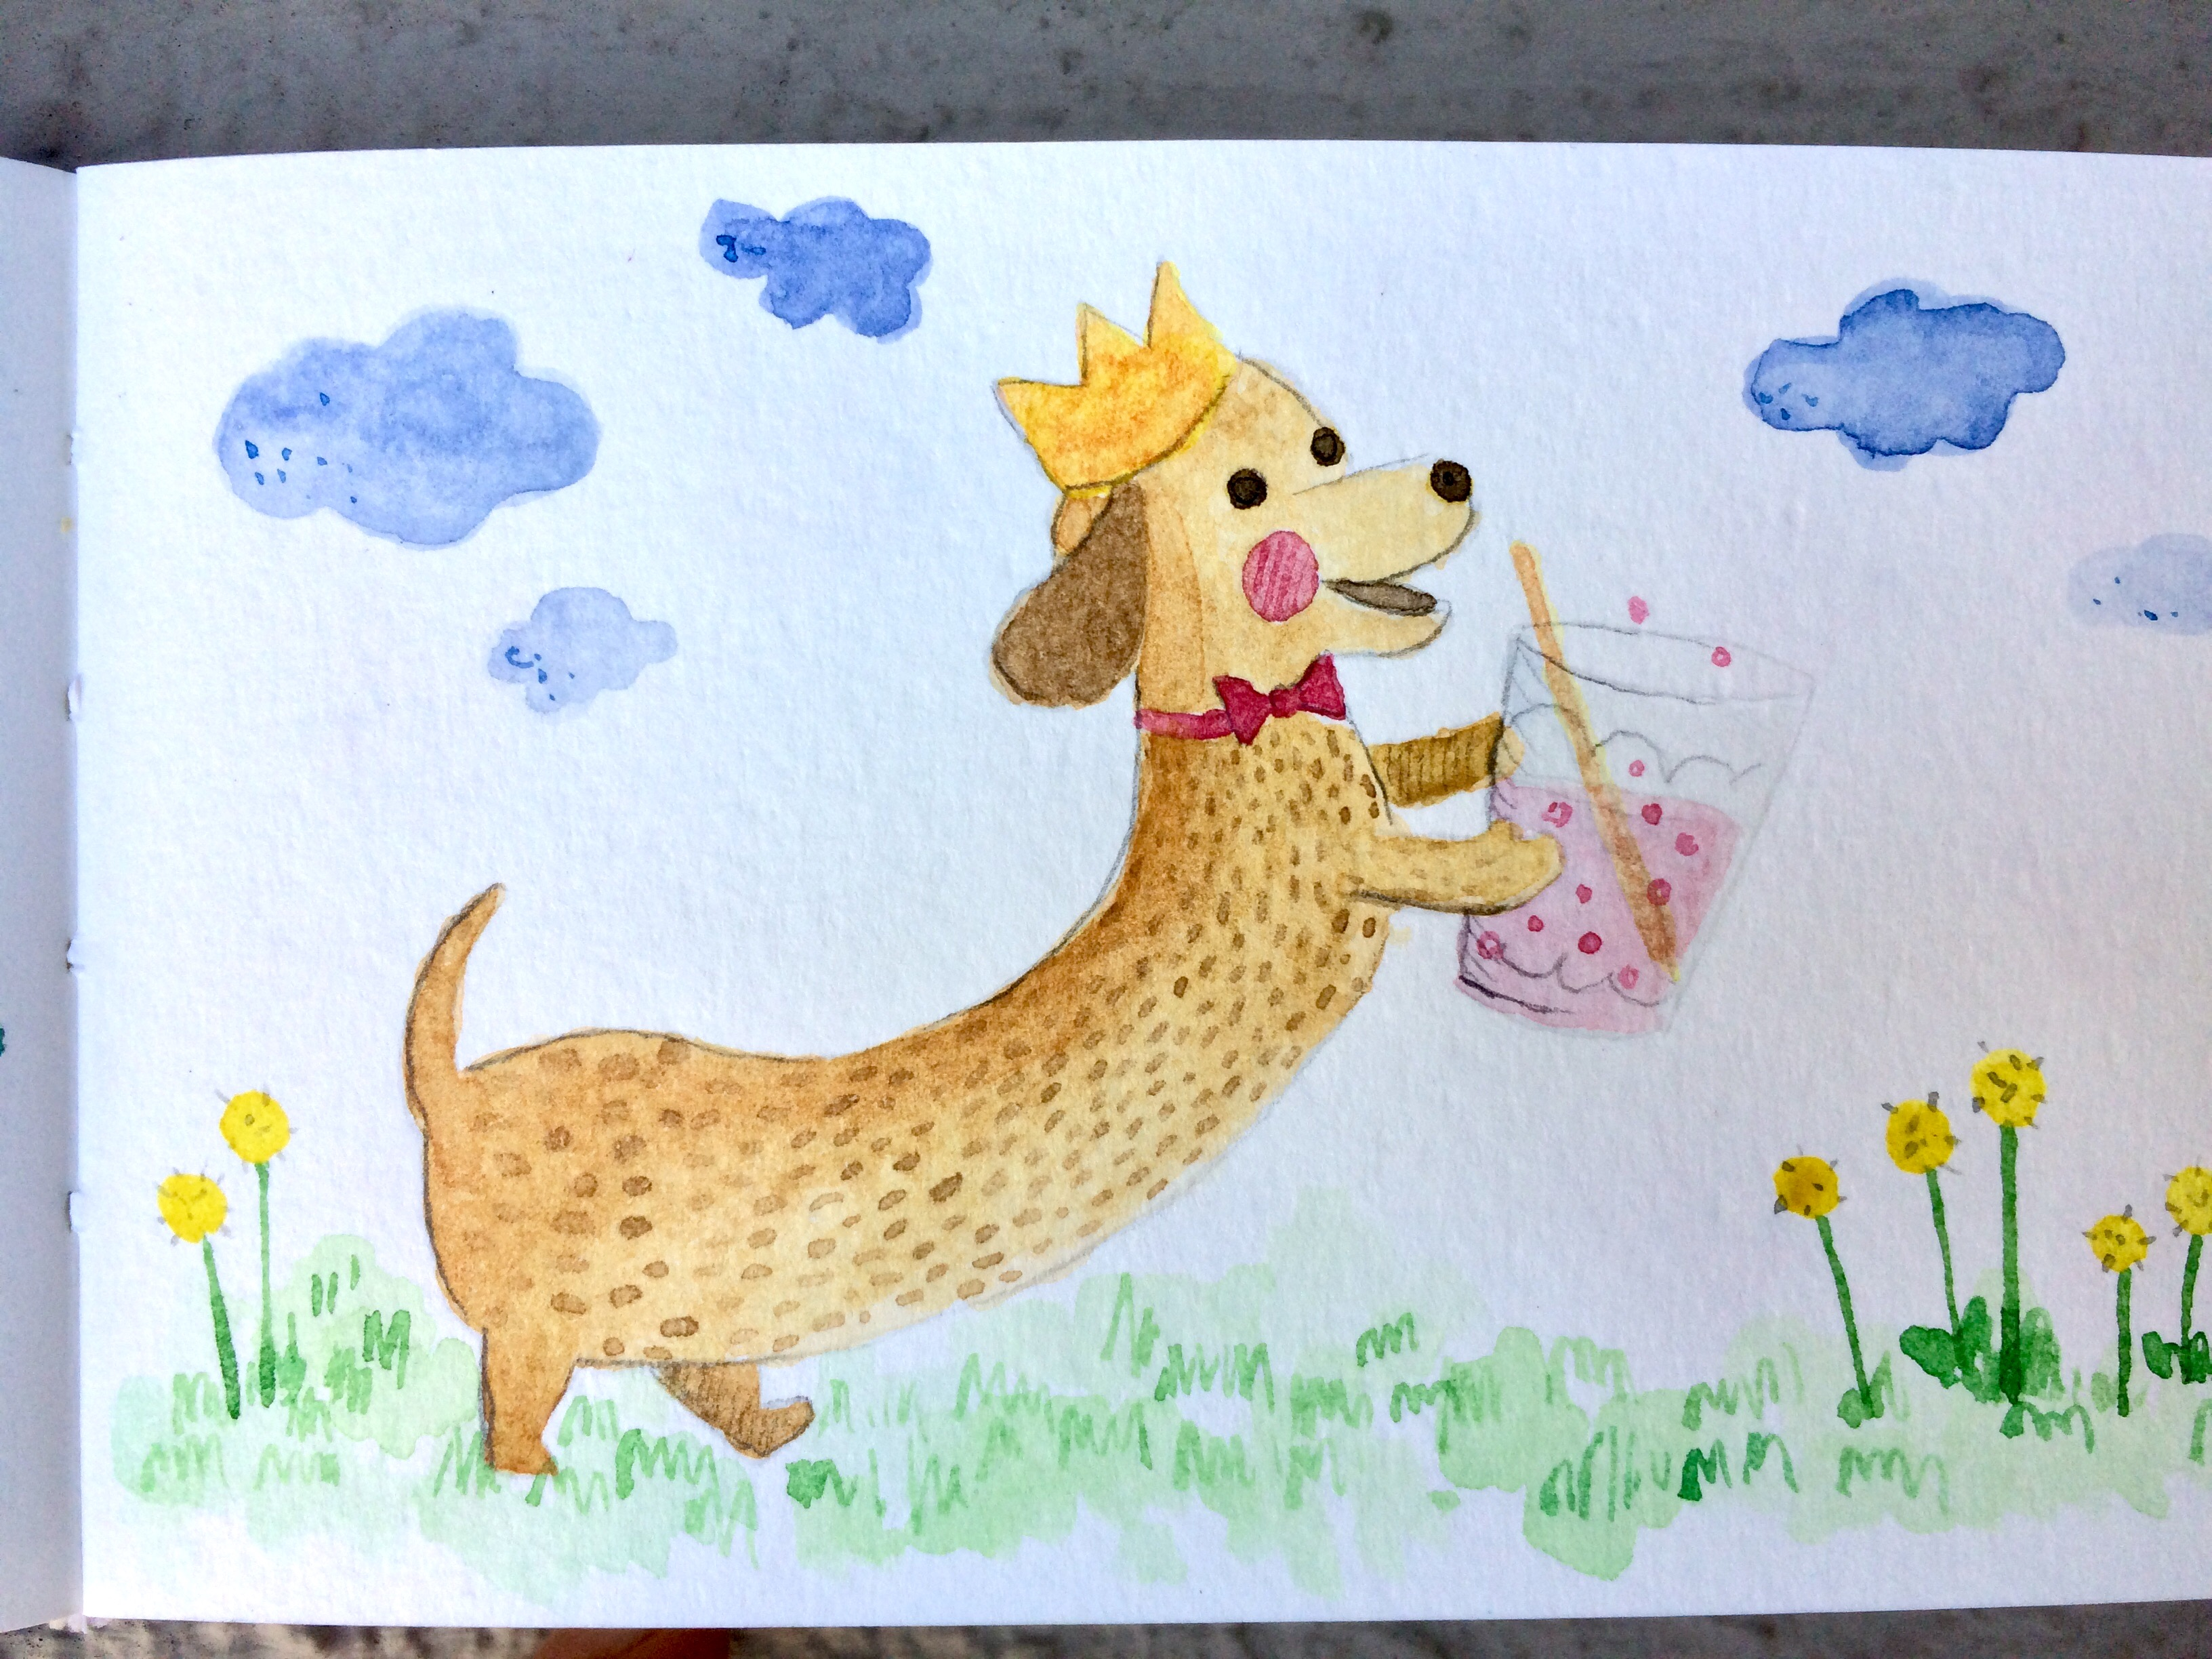 Daily watercolour - Party puppy by Amie Sabadin